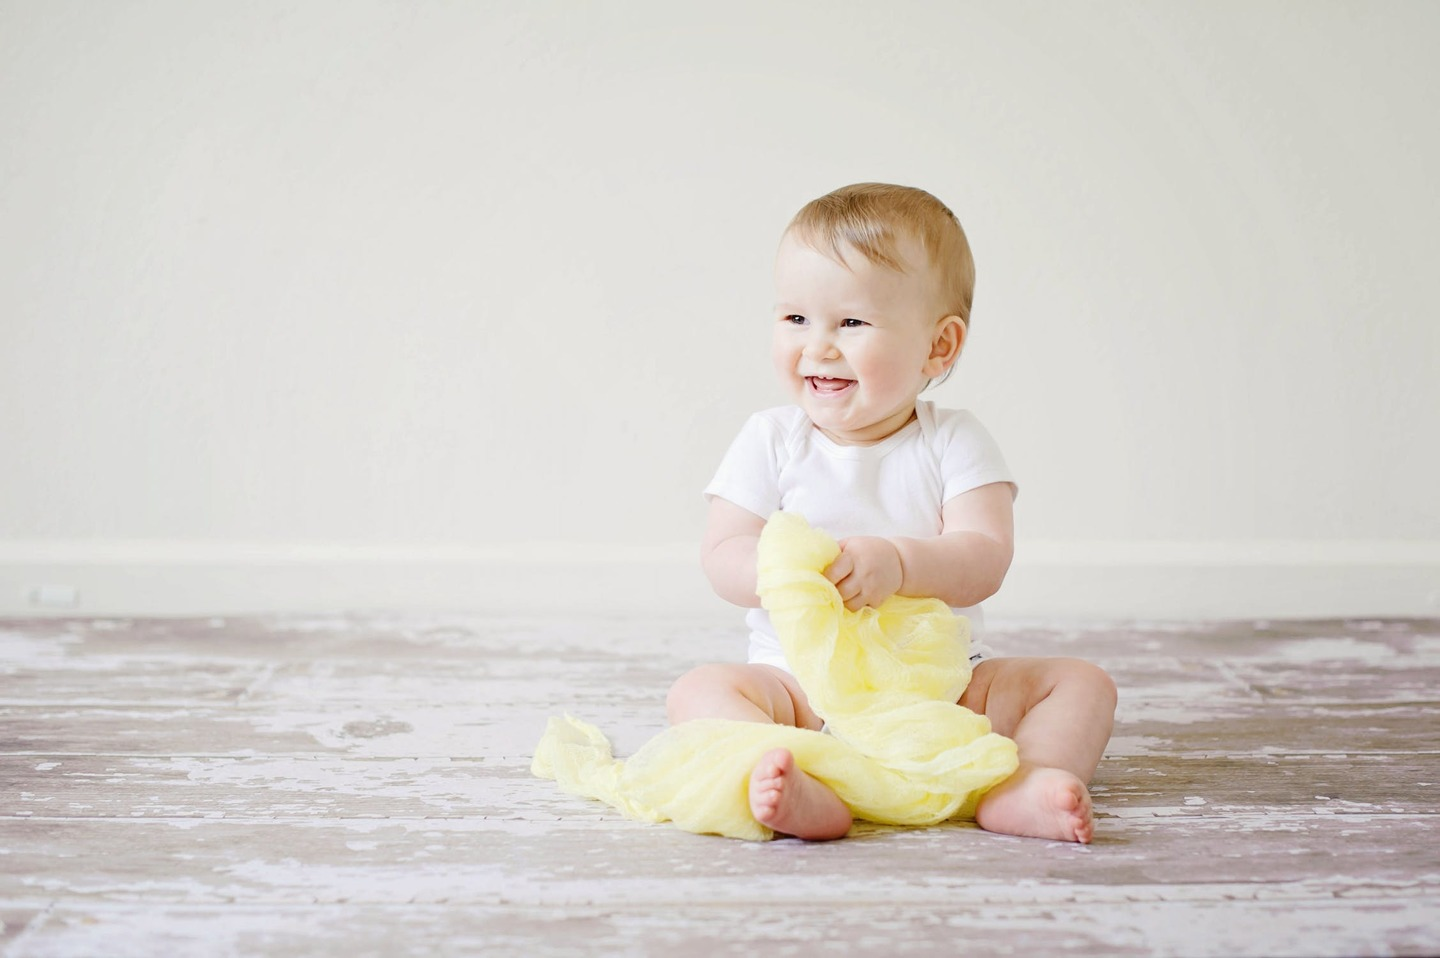 A baby smiling and holding a yellow blanket